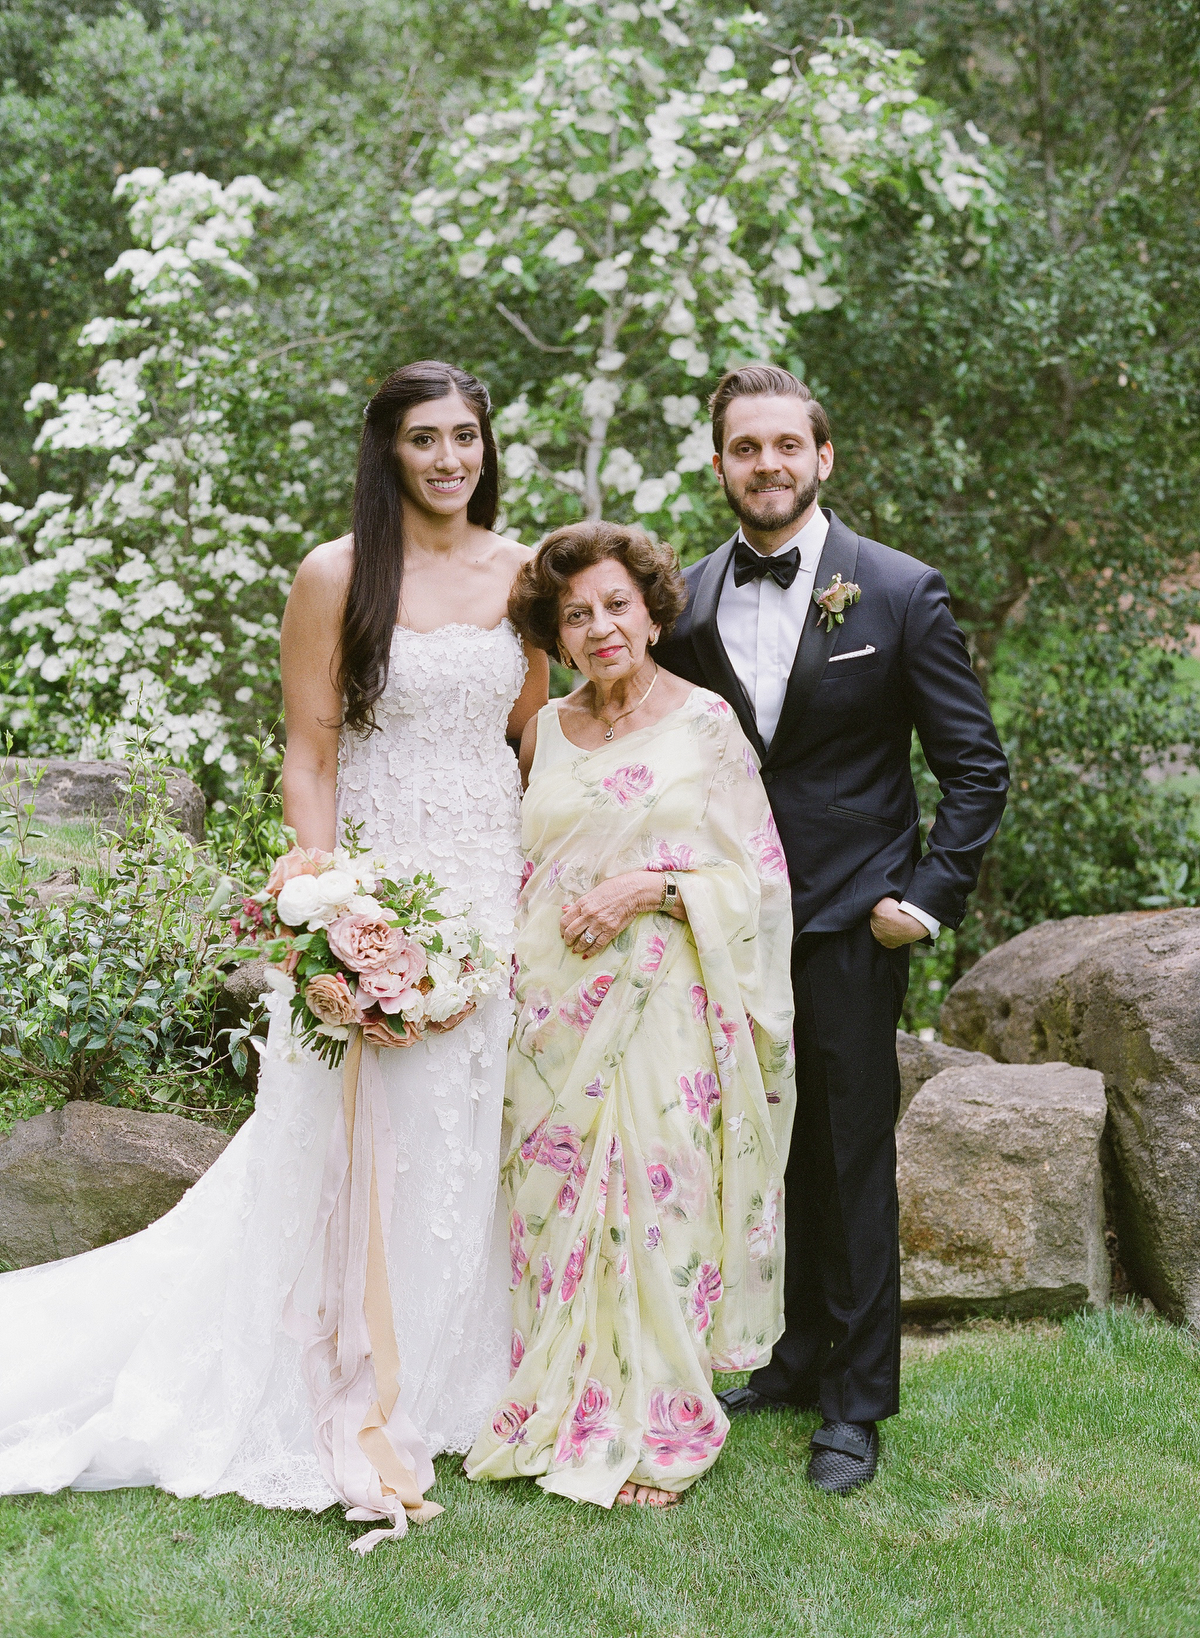 nadine dan wedding couple with family